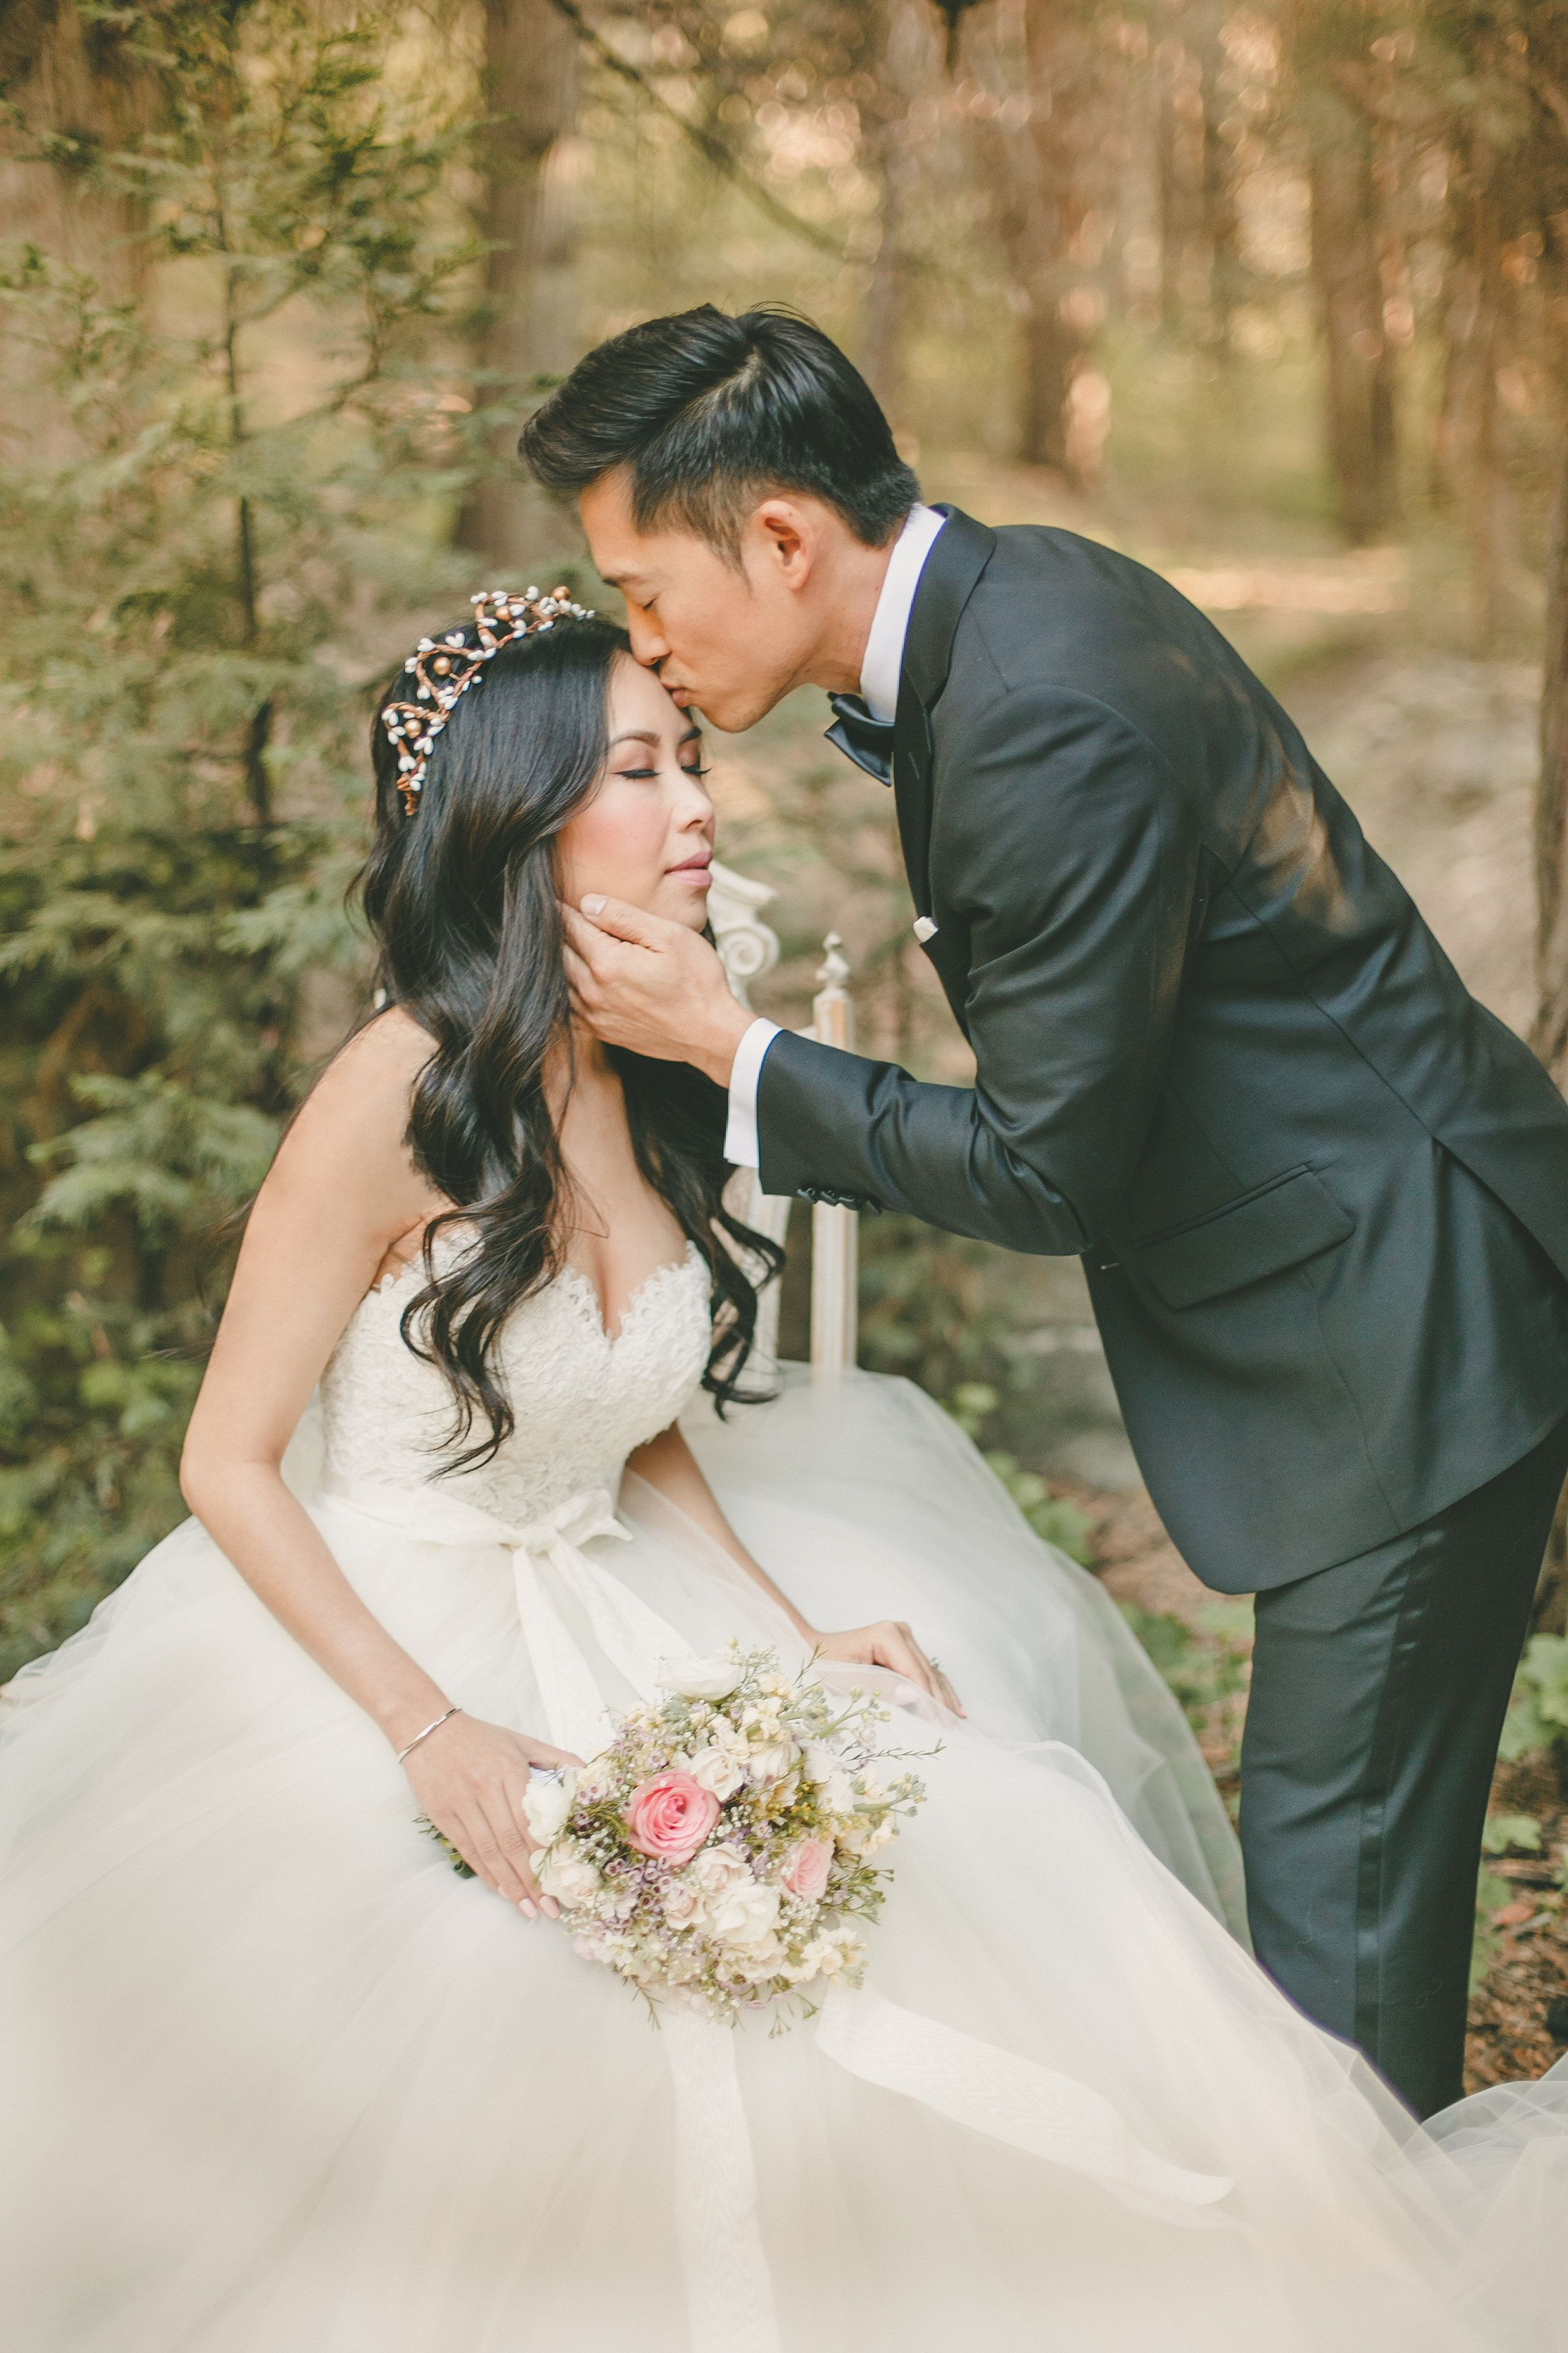 Woodland wedding dress  A woodland inspired bridal crown with white and gold berries for the